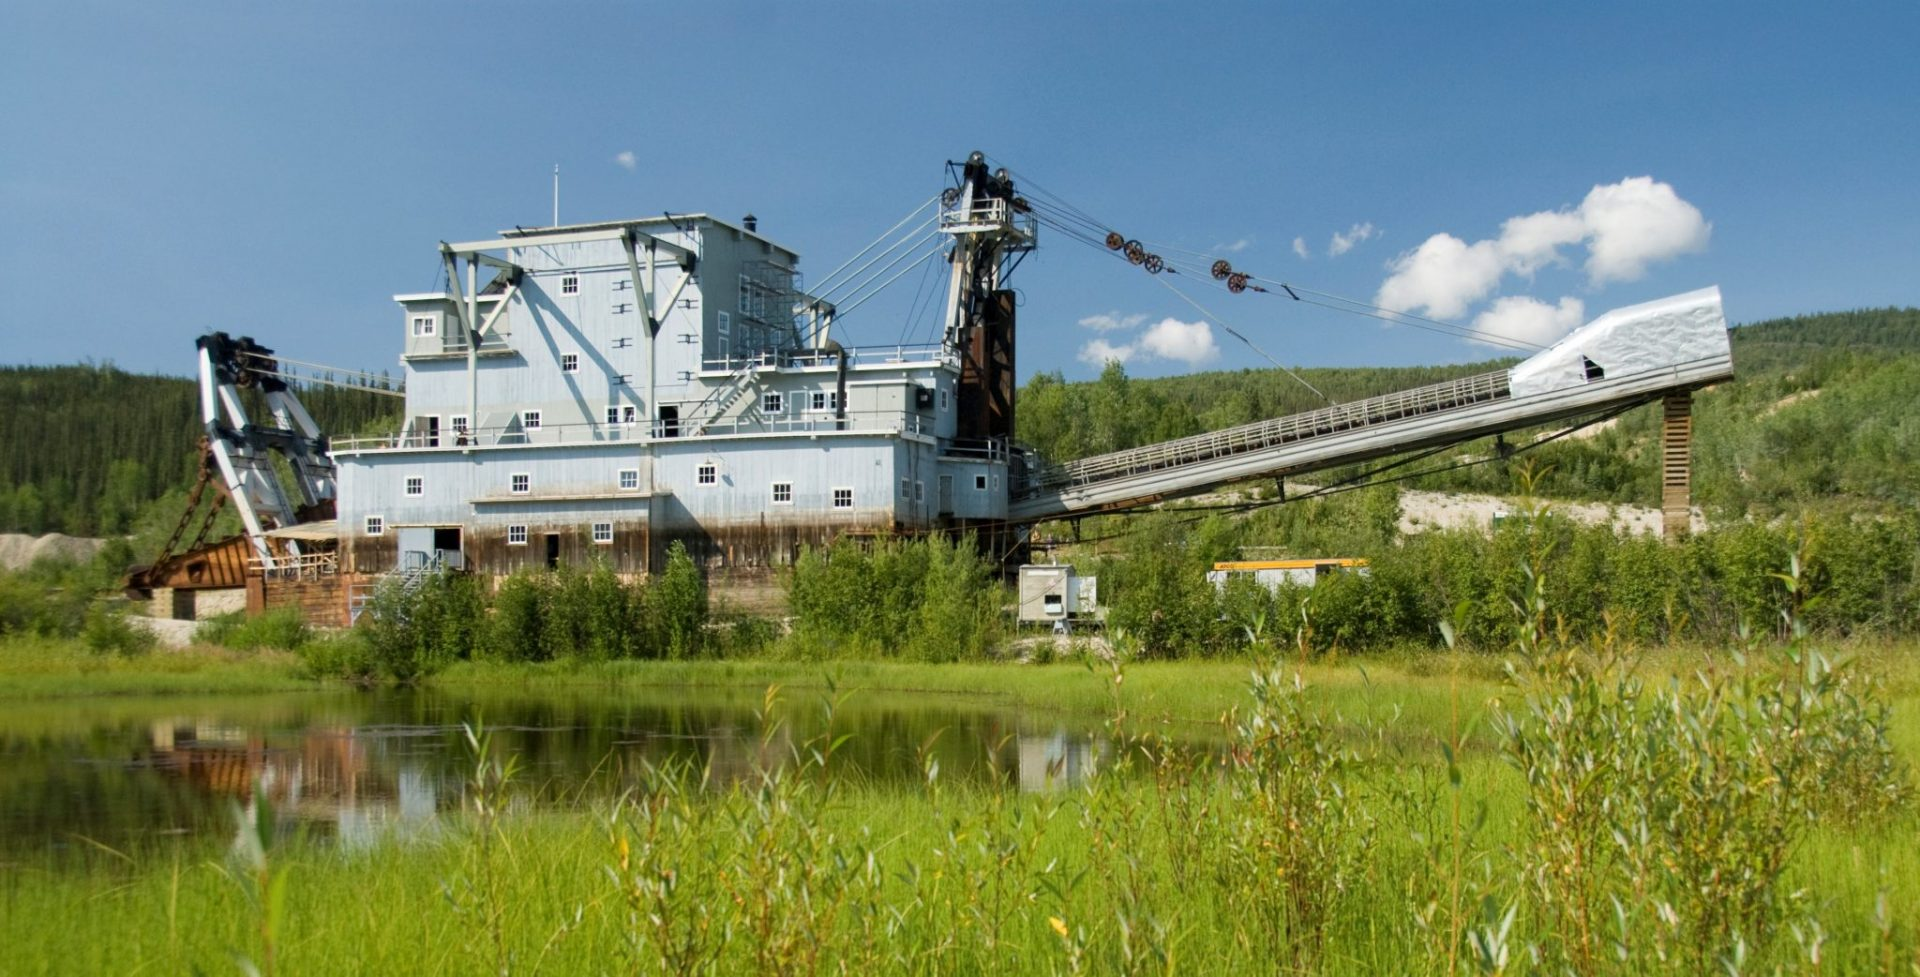 A large gold dredge in a green field with a pond and mountains in the background. The dredge looks like a 5 story metal building with a long arm sticking out one side and more machinery in the back